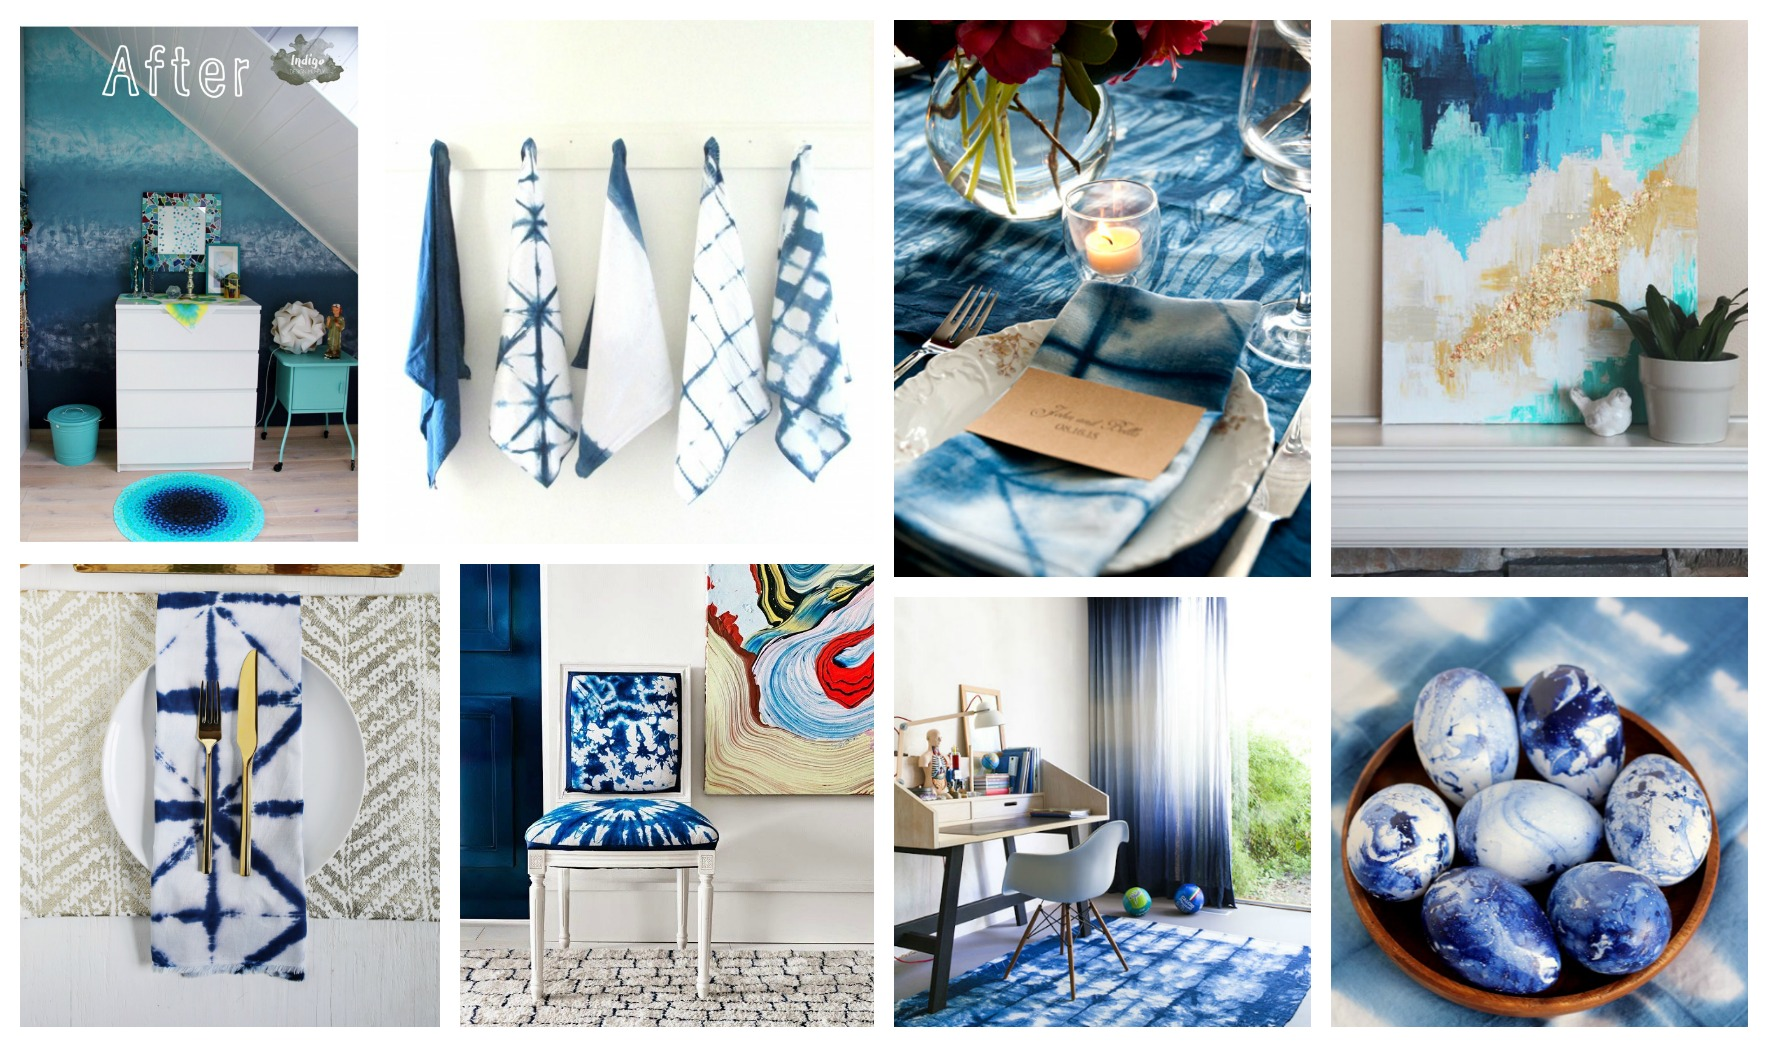 How To Incorporate The Indigo Patterns In Your Home In A Magnificent Way